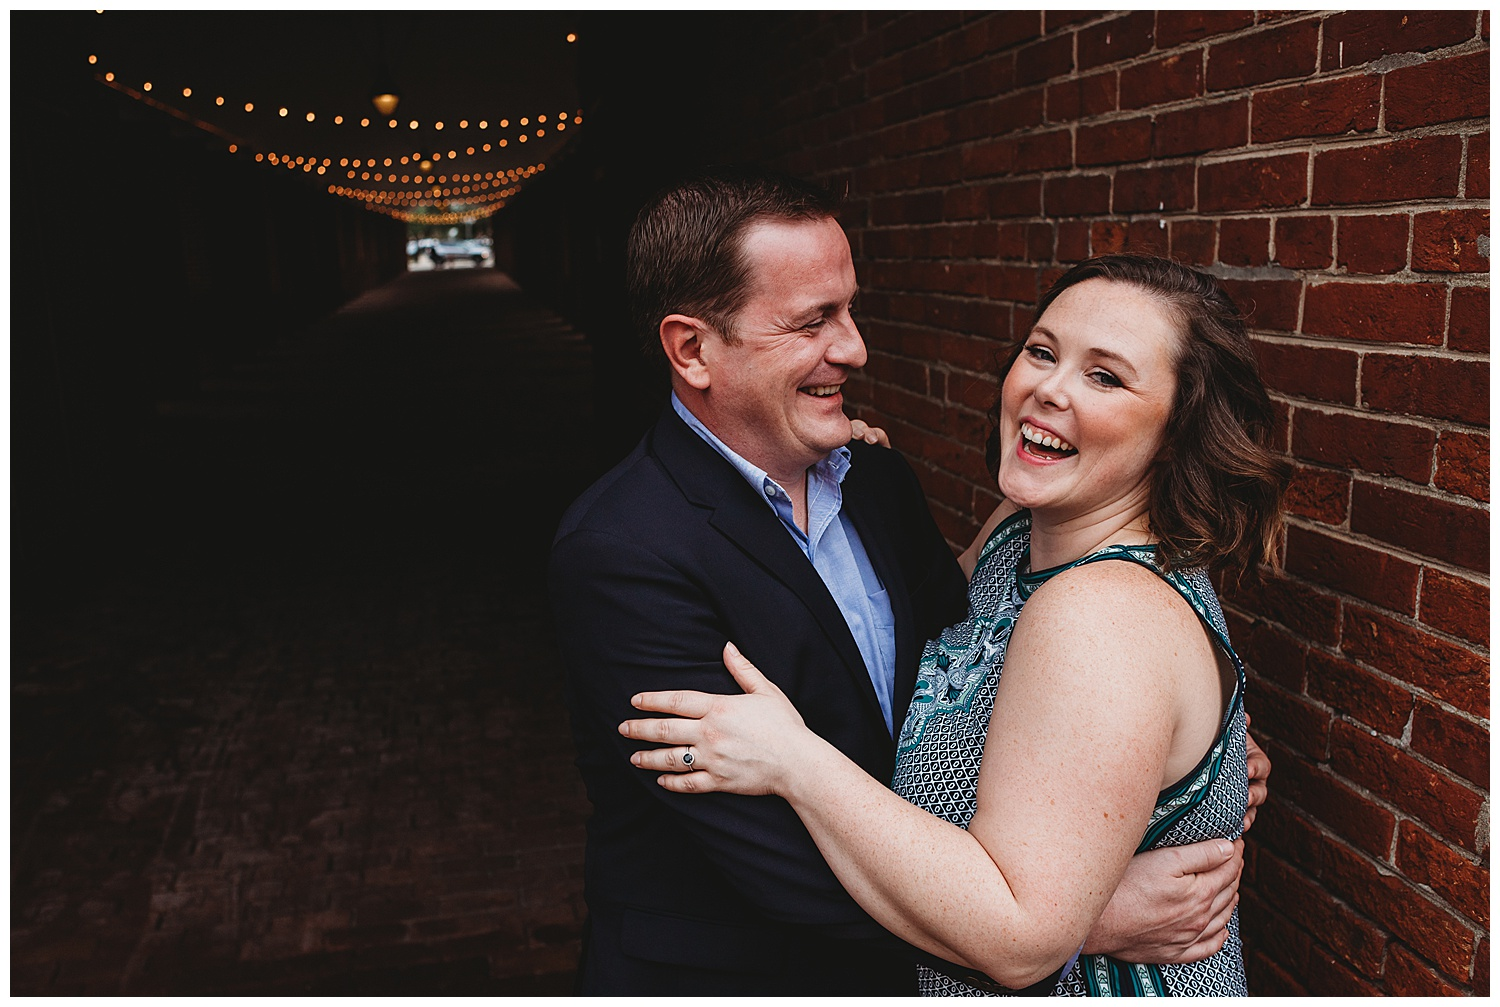 philadelphia engagement photographer _ desiree hoelzle photography_0059.jpg